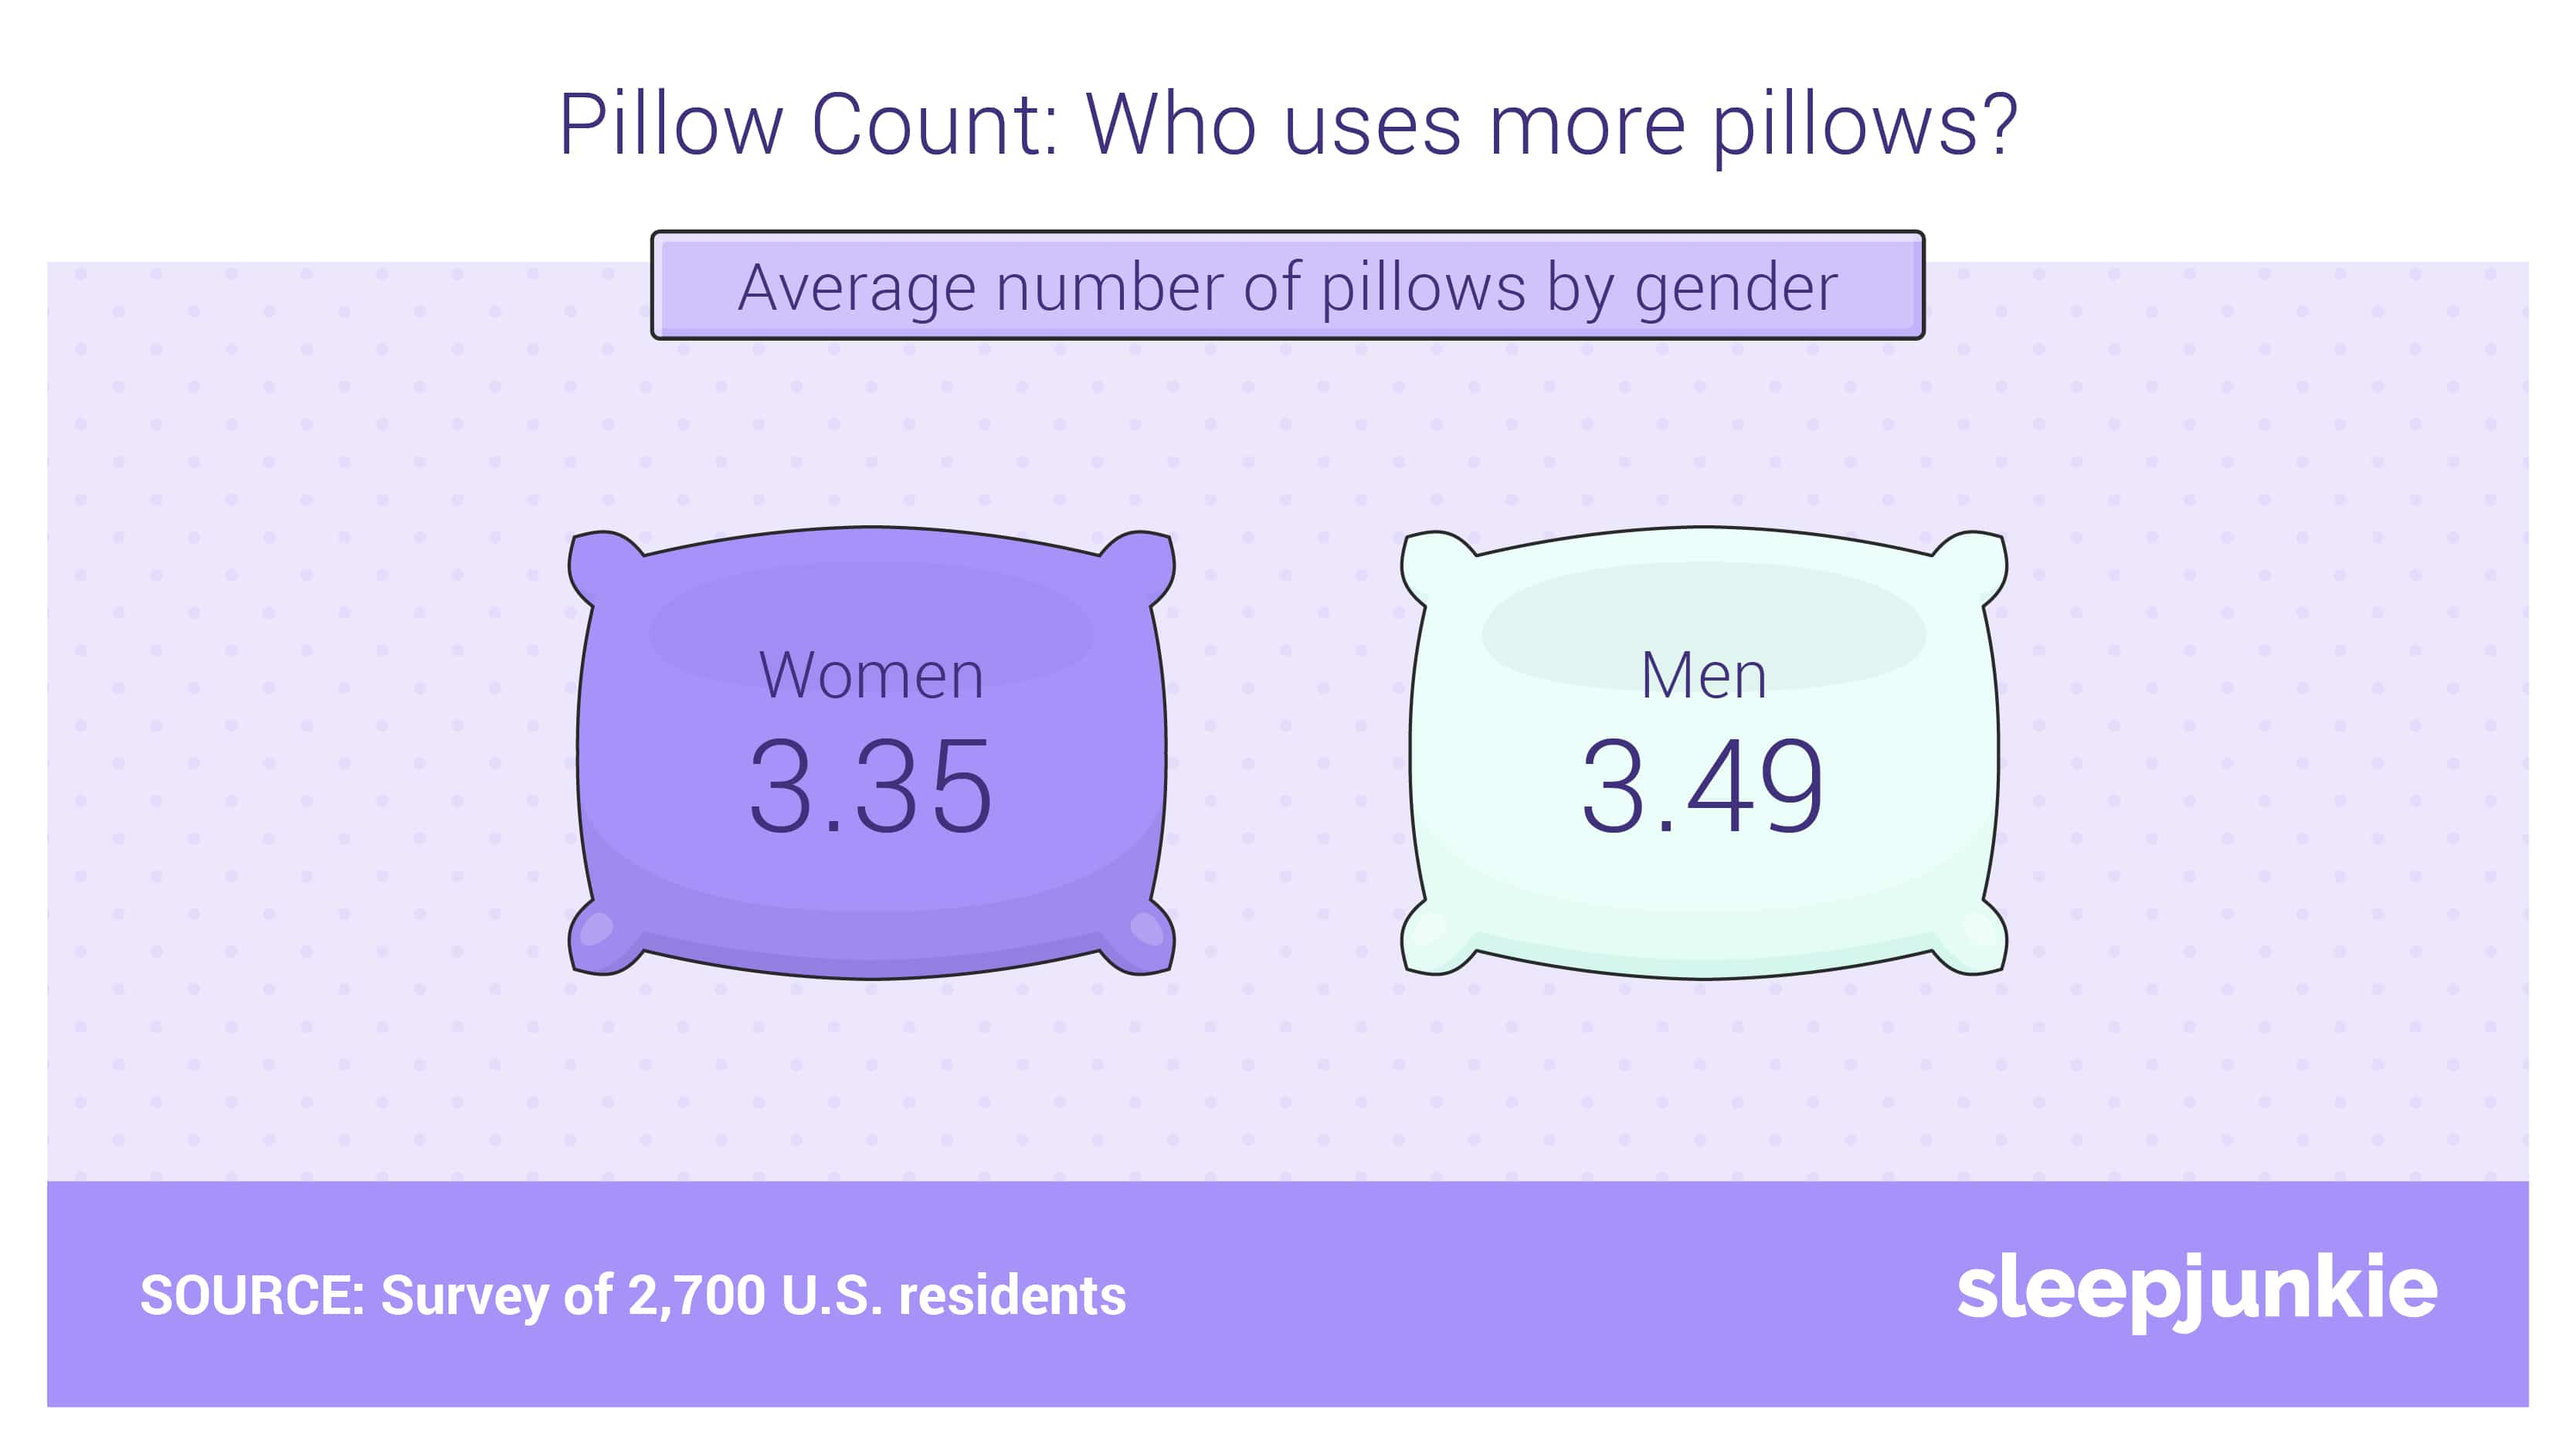 pillow count: who uses more pillows